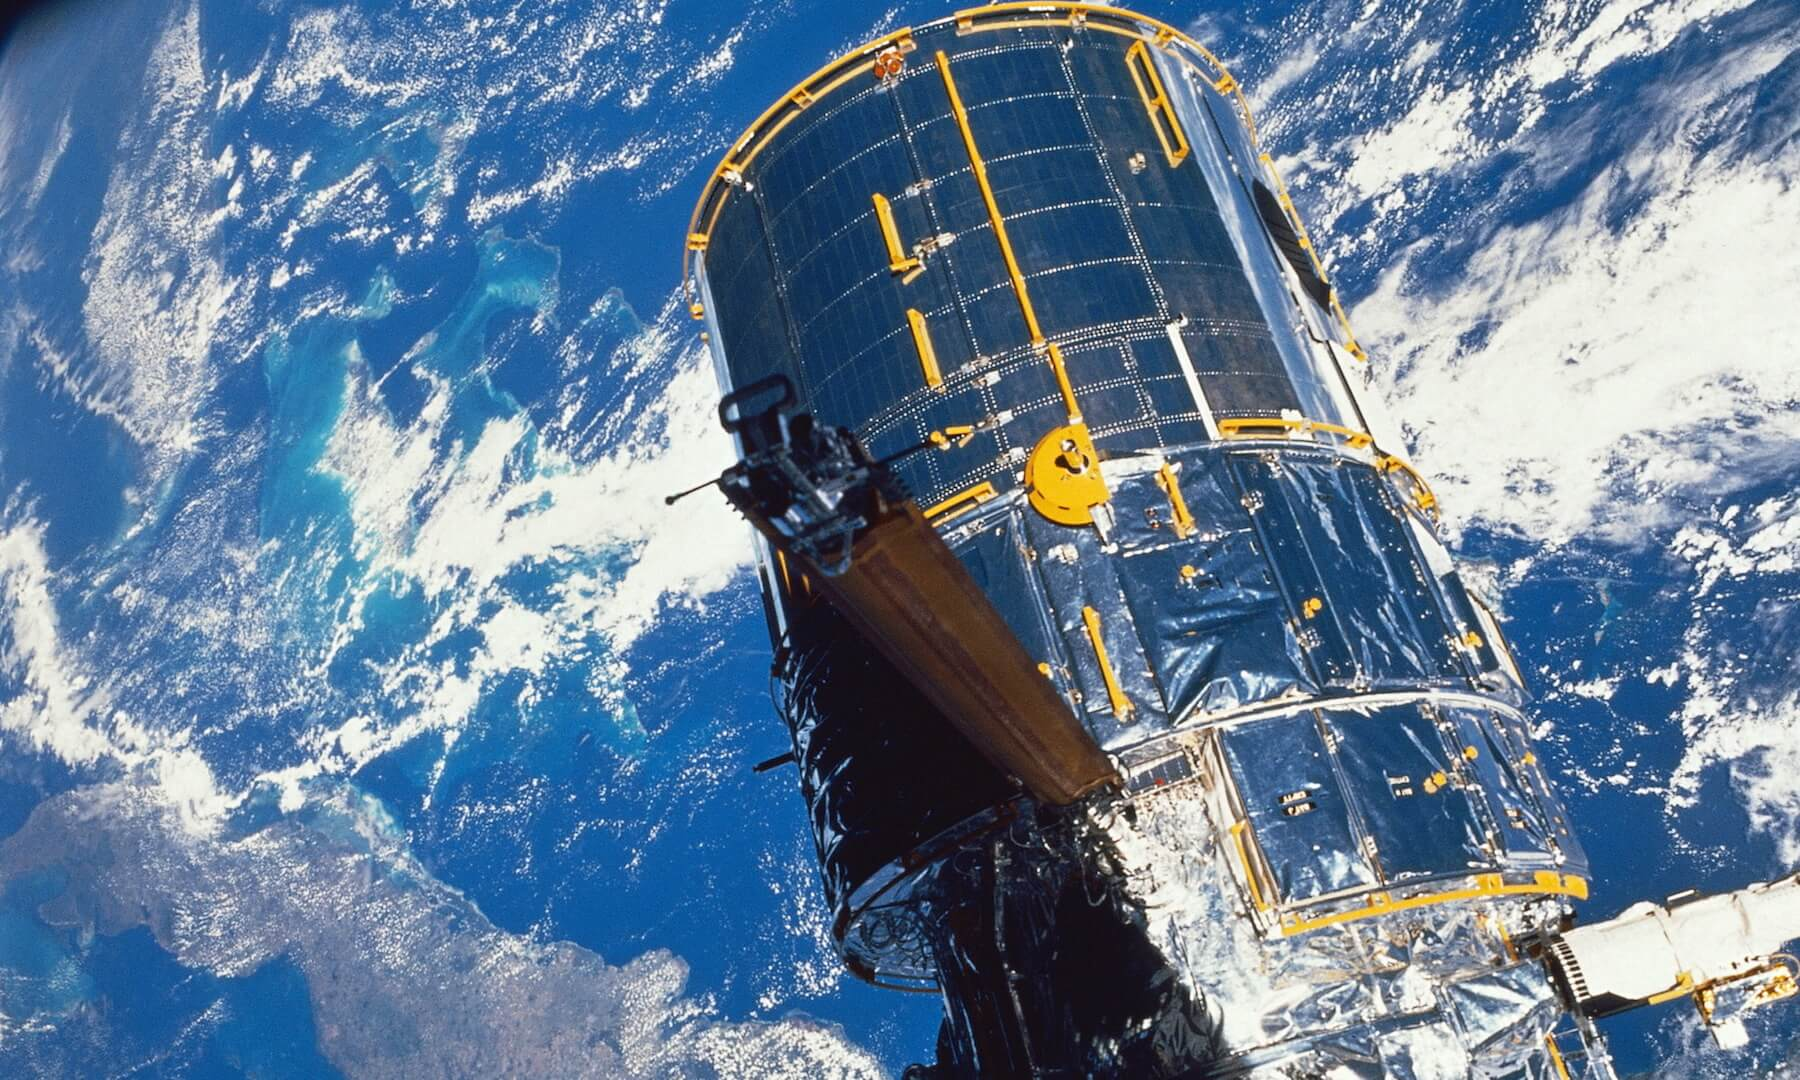 Hubble Space Telescope Over the Earth